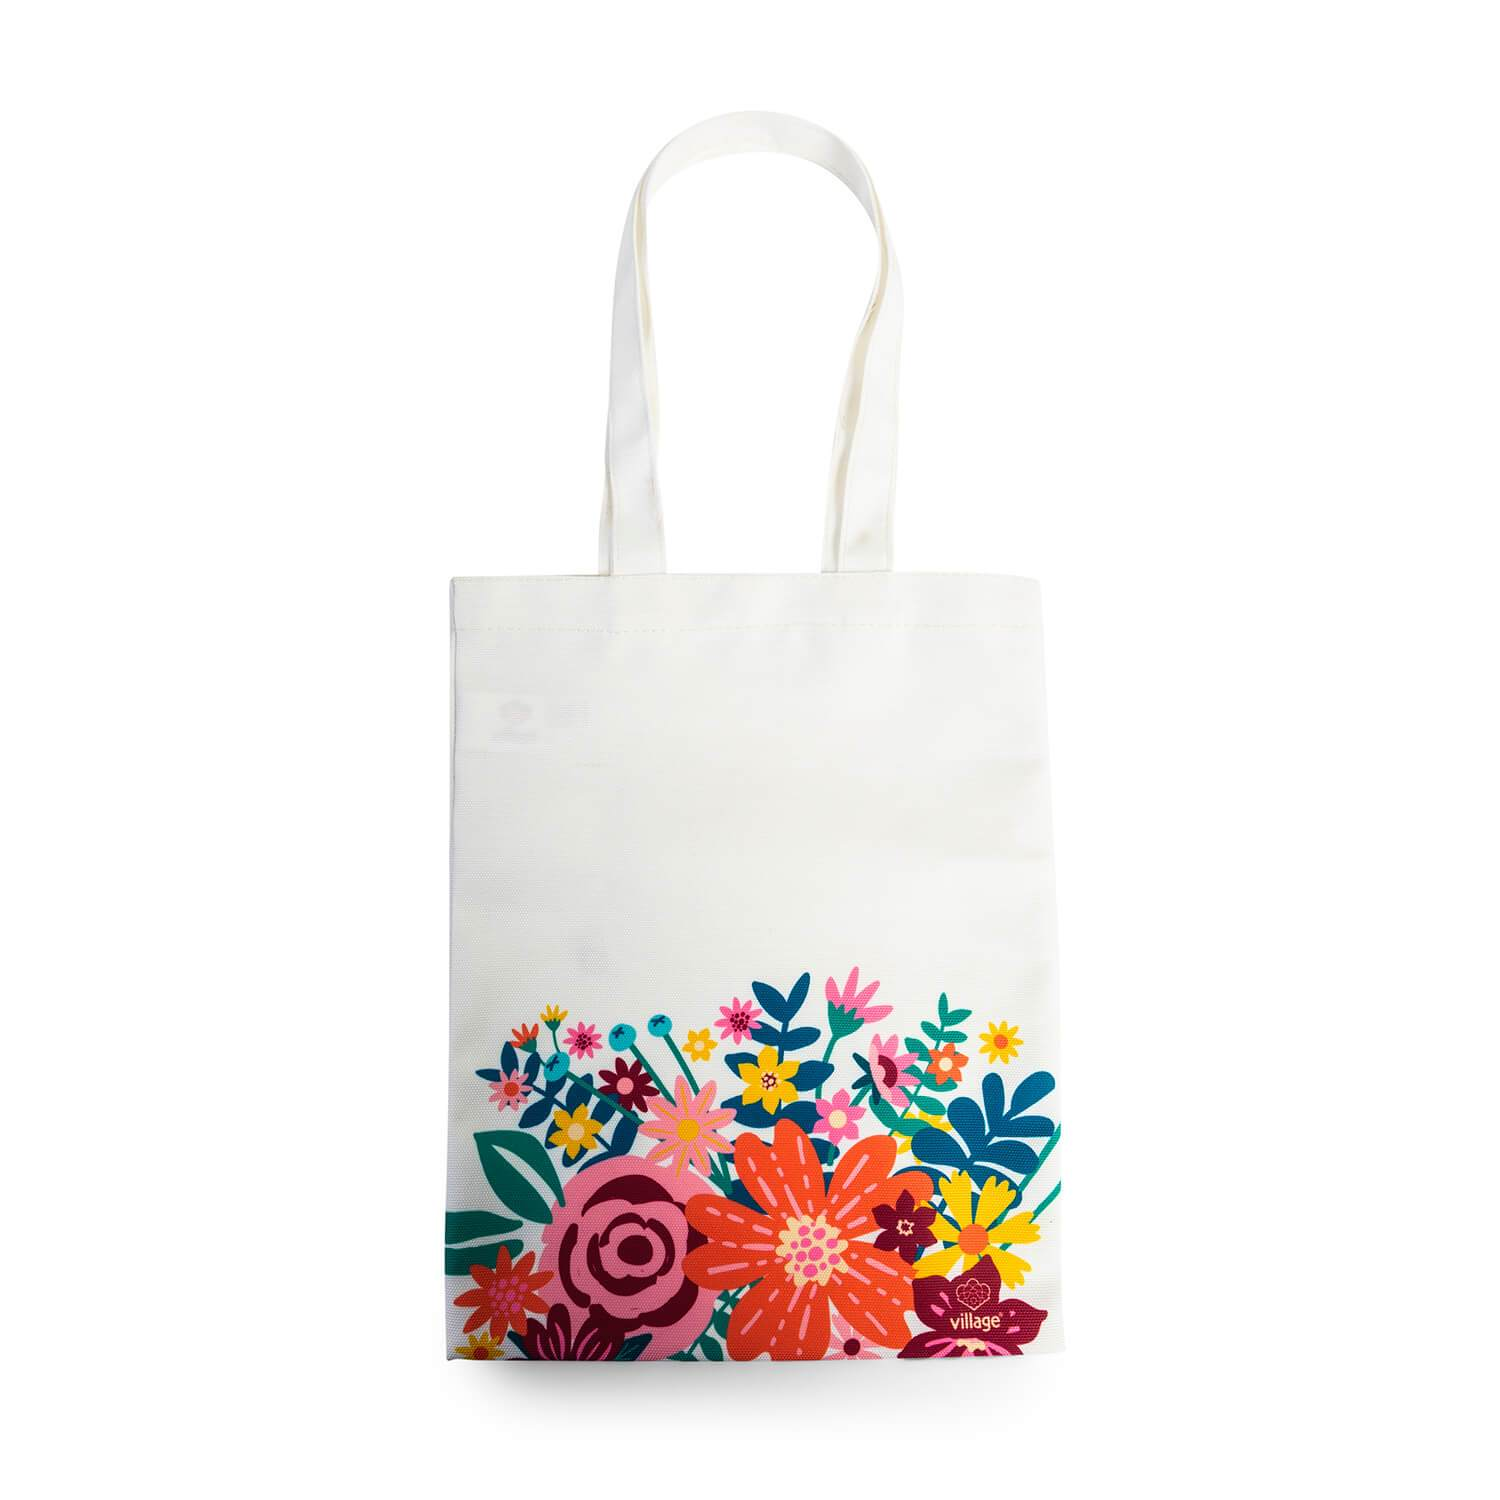 Bolsa Canvas Flores Village